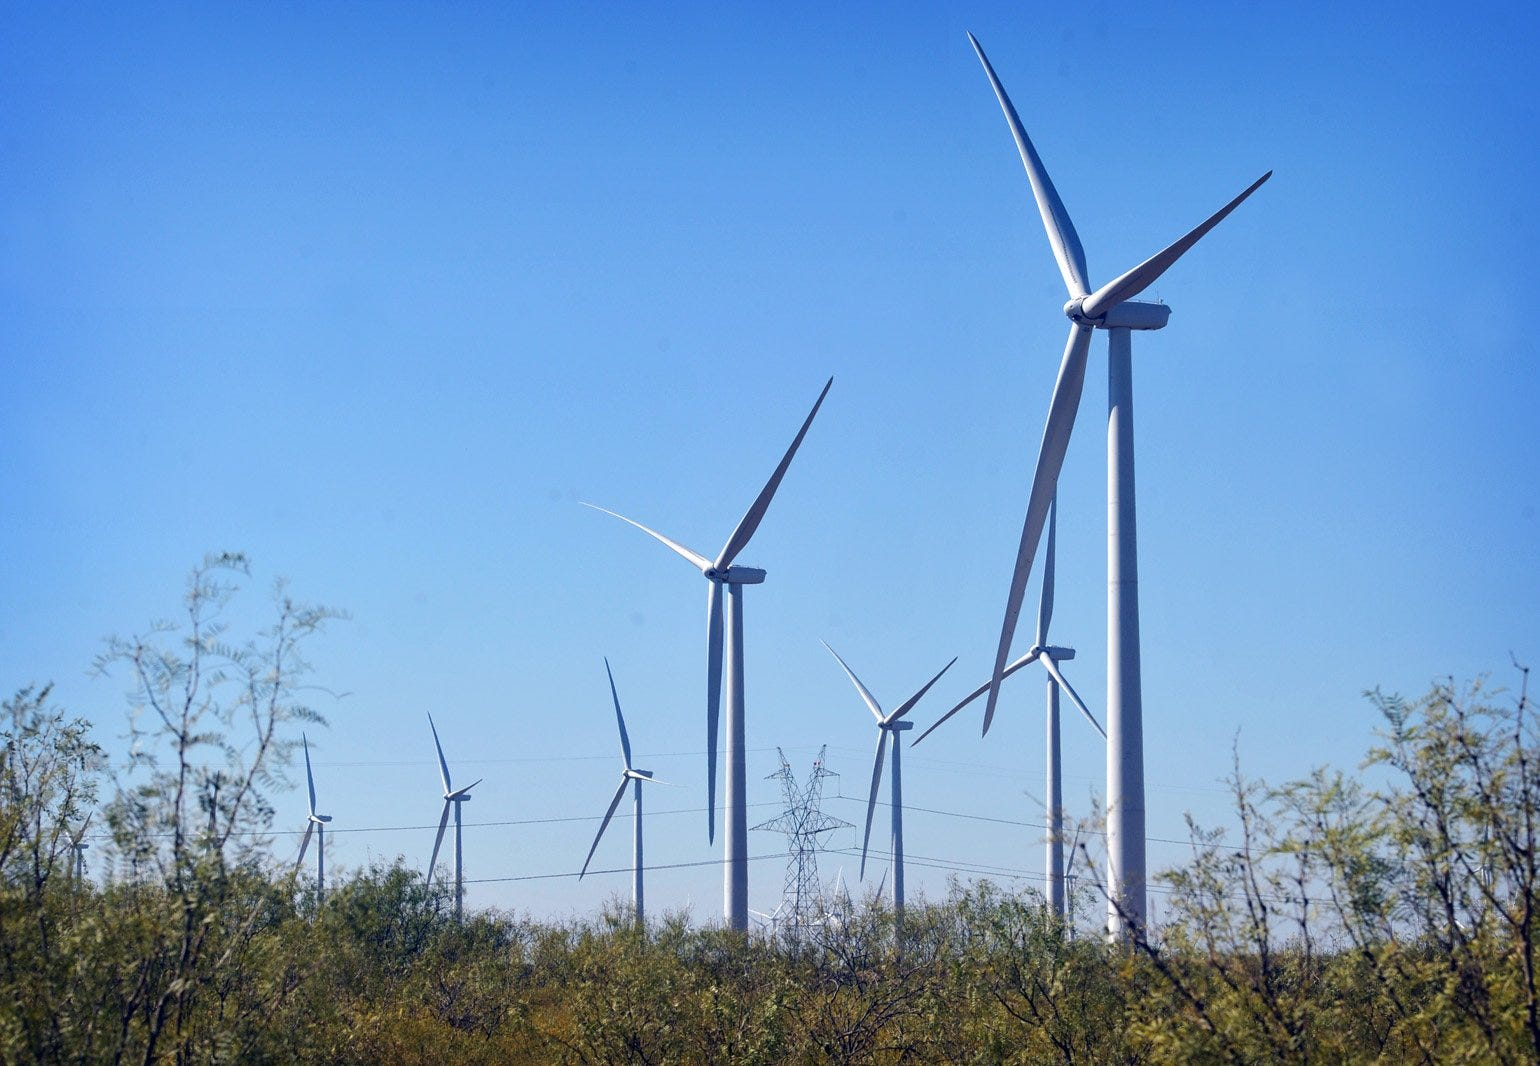 636160350243989580 1105 WFLO Clay Co Wind Farm 1 south texas wind farm study released in full Circuit Breaker Box at gsmx.co